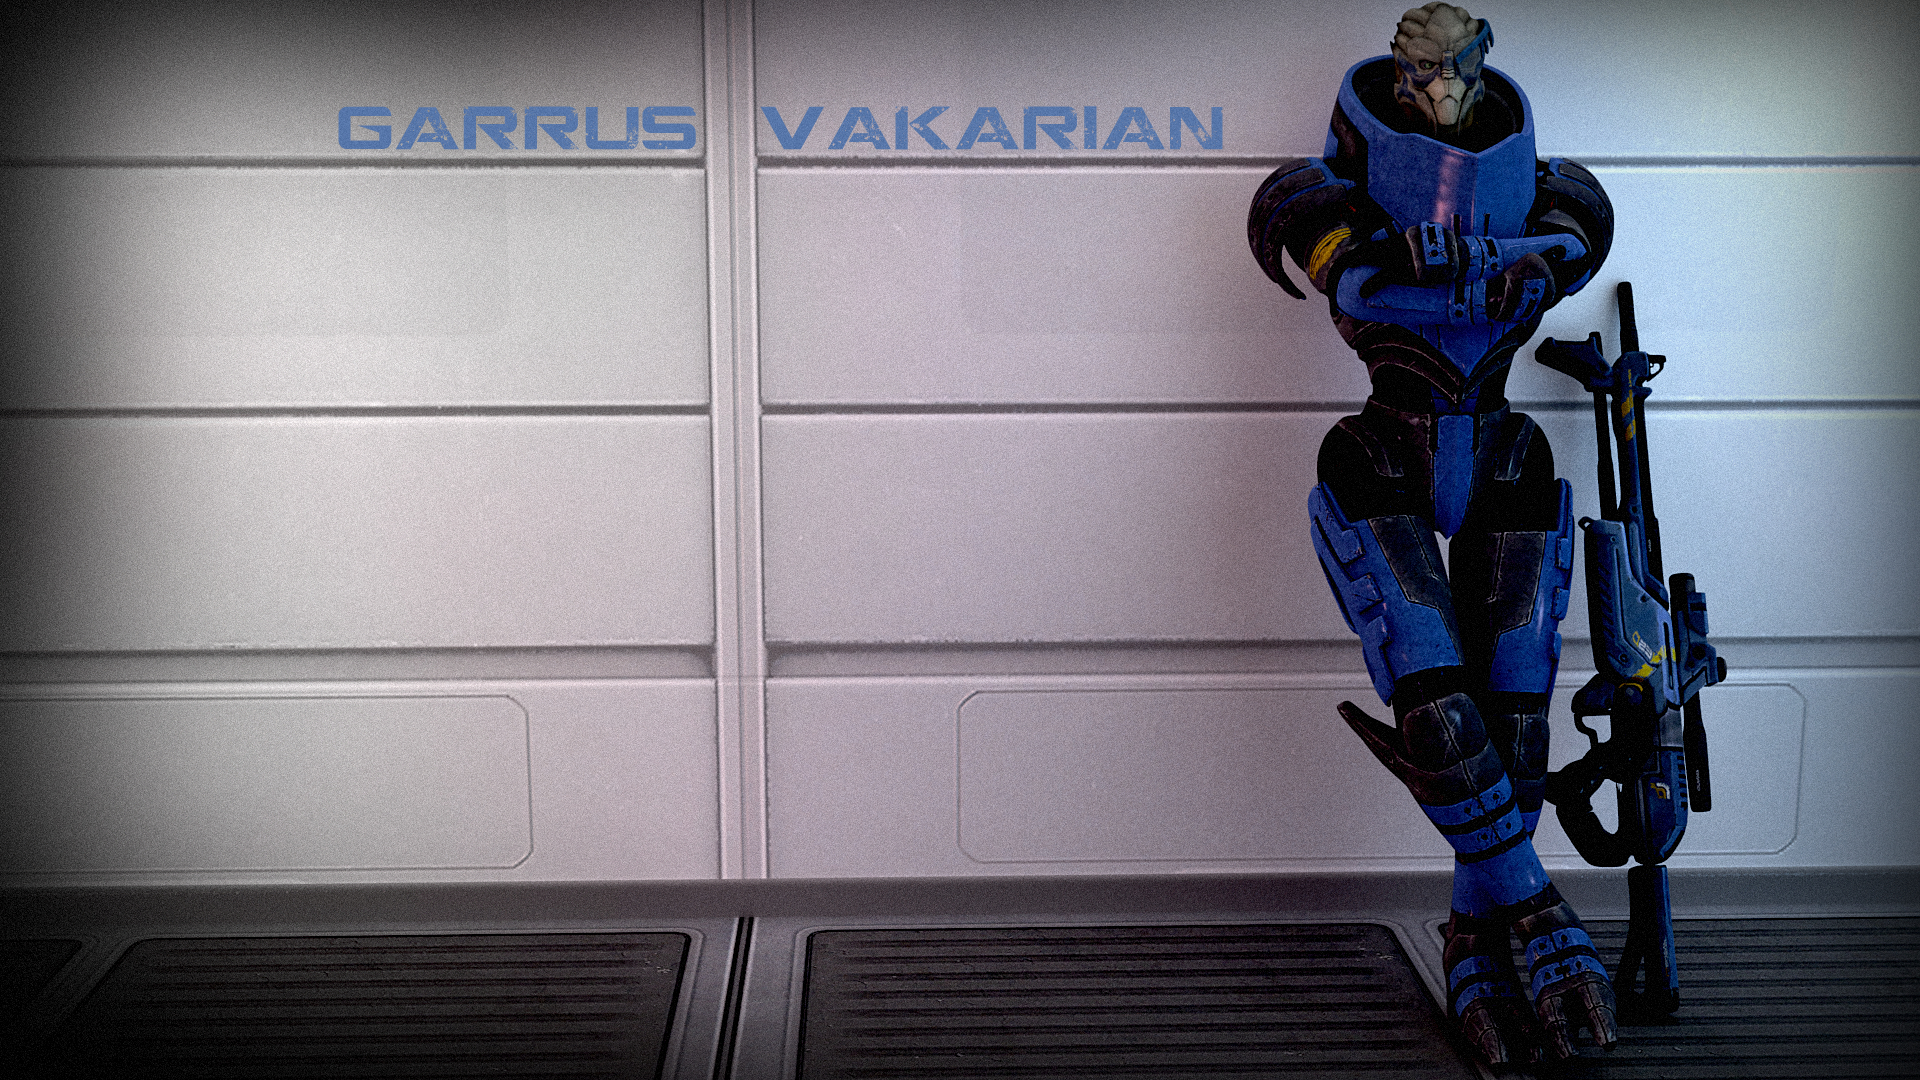 mass effect Garrus vakarian HD Wallpaper